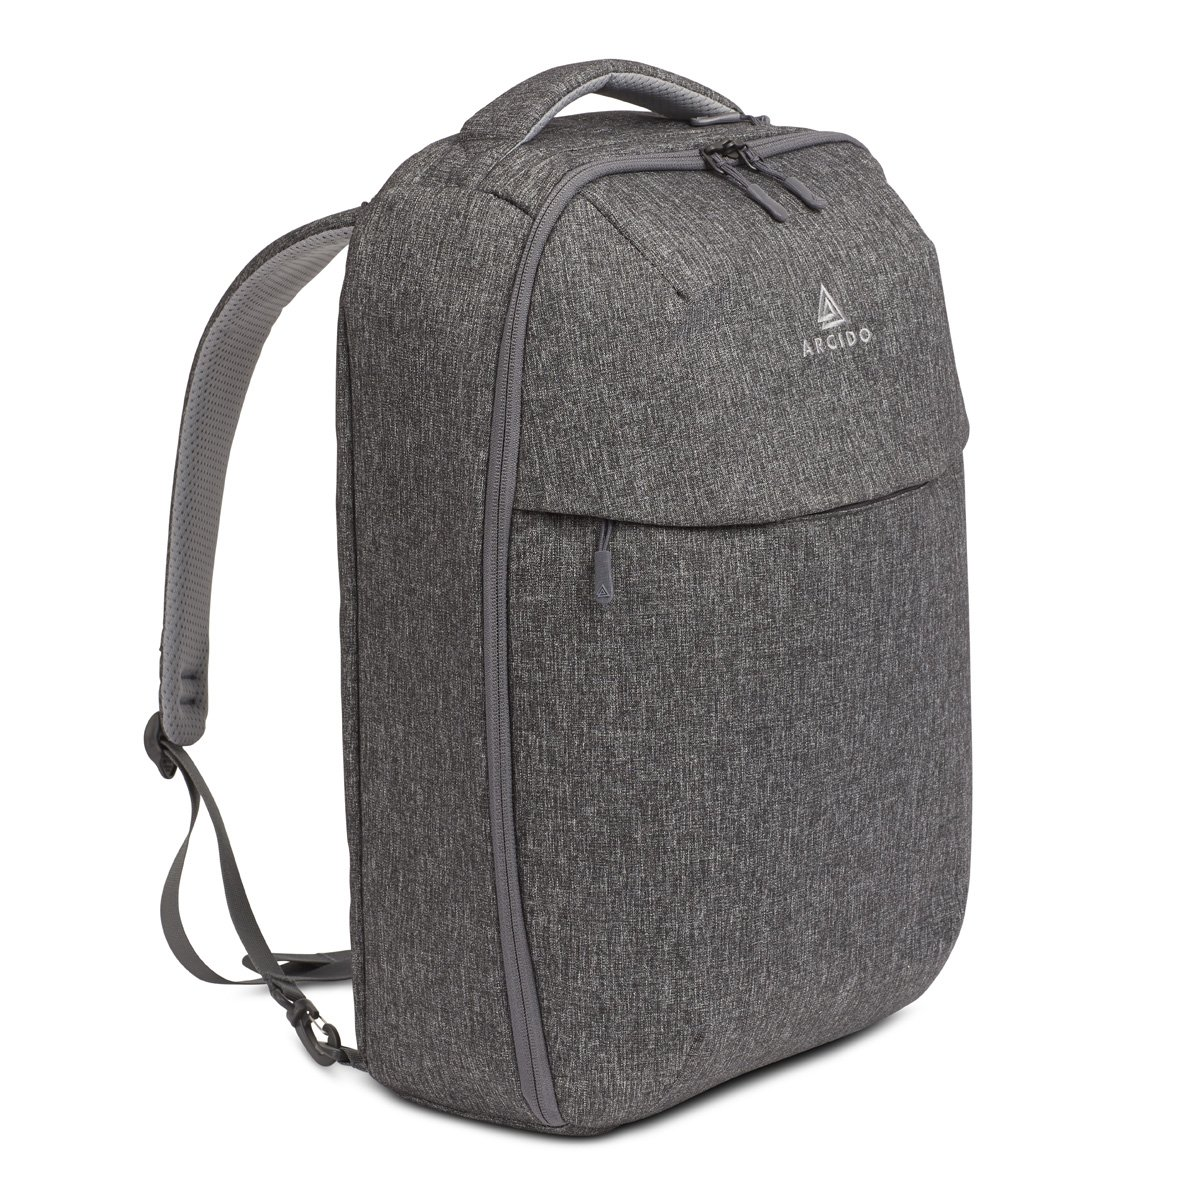 23f073120f Arcido Saxon Convertible Backpack for Travel - Hybrid Airline Approved Carry  On Backpack Day Bag Backpack Backpack Briefcase - Fits Laptops Up To 15  Inches ...